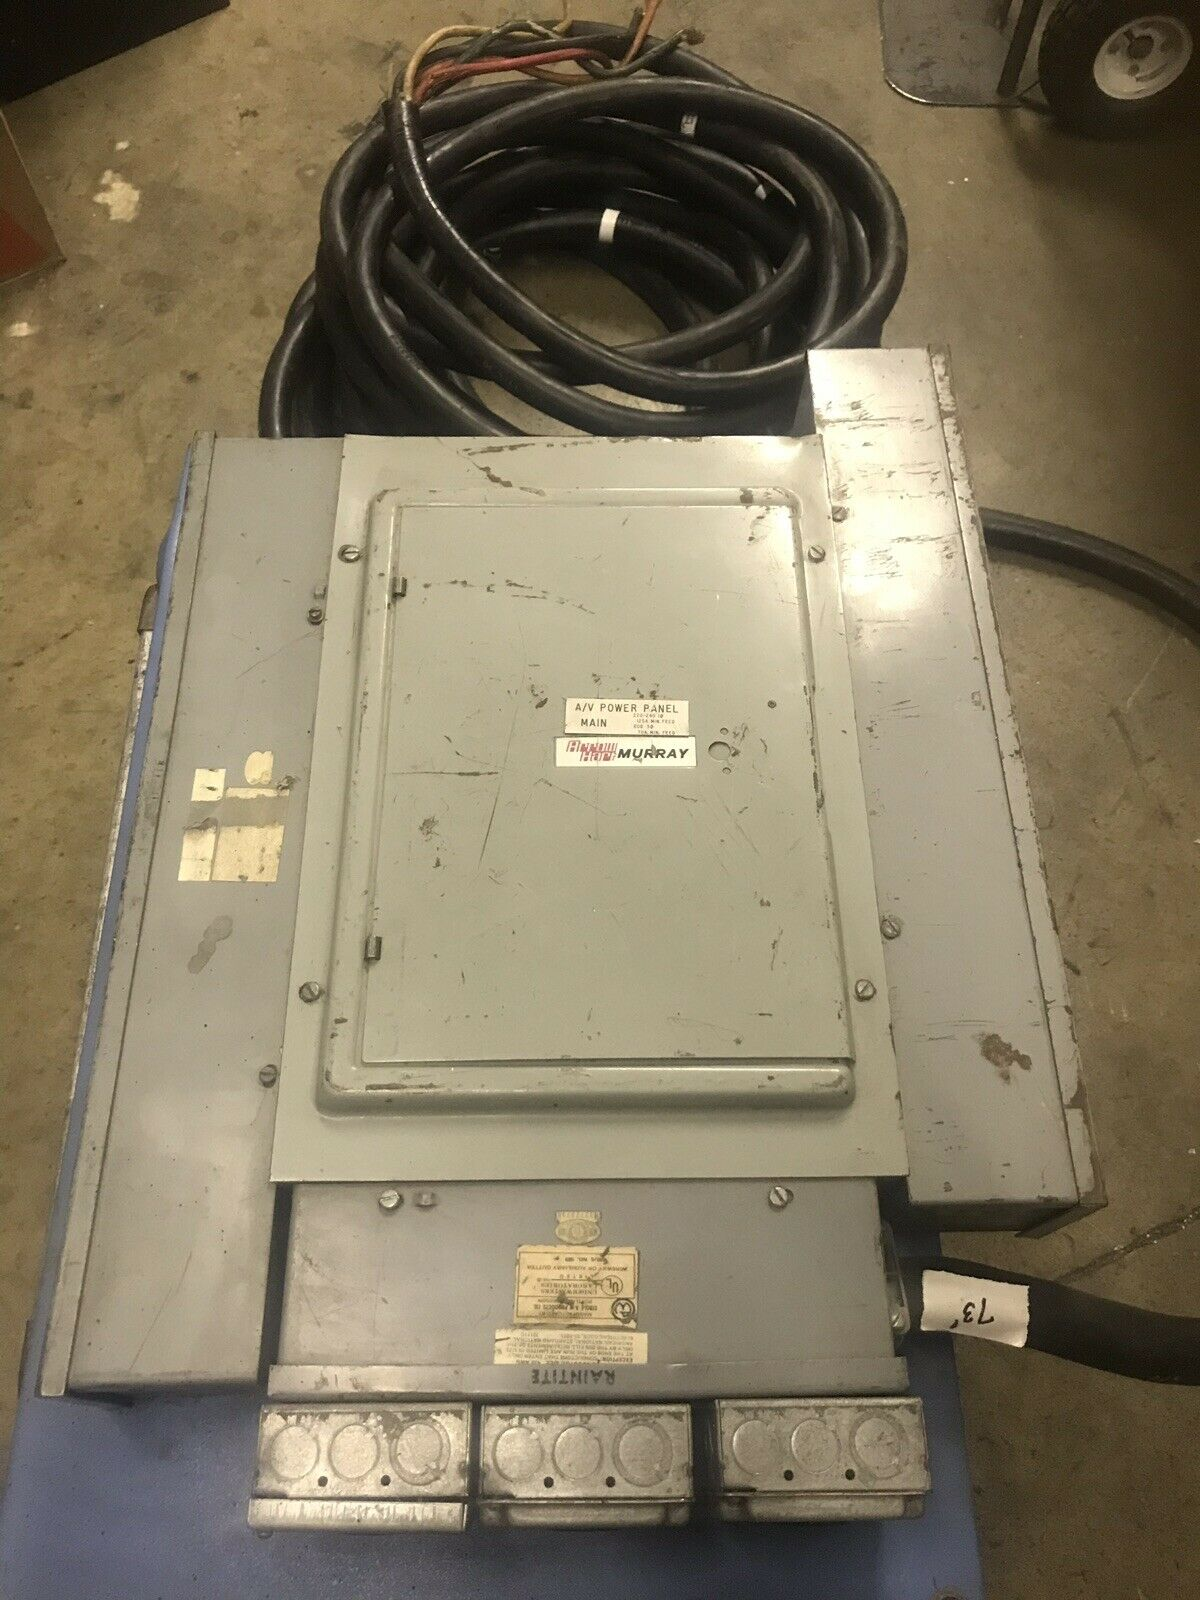 Einzelphase 220 3 Phase 208 Power Distro.18- 30A Circuits.3-250v 20A Twist